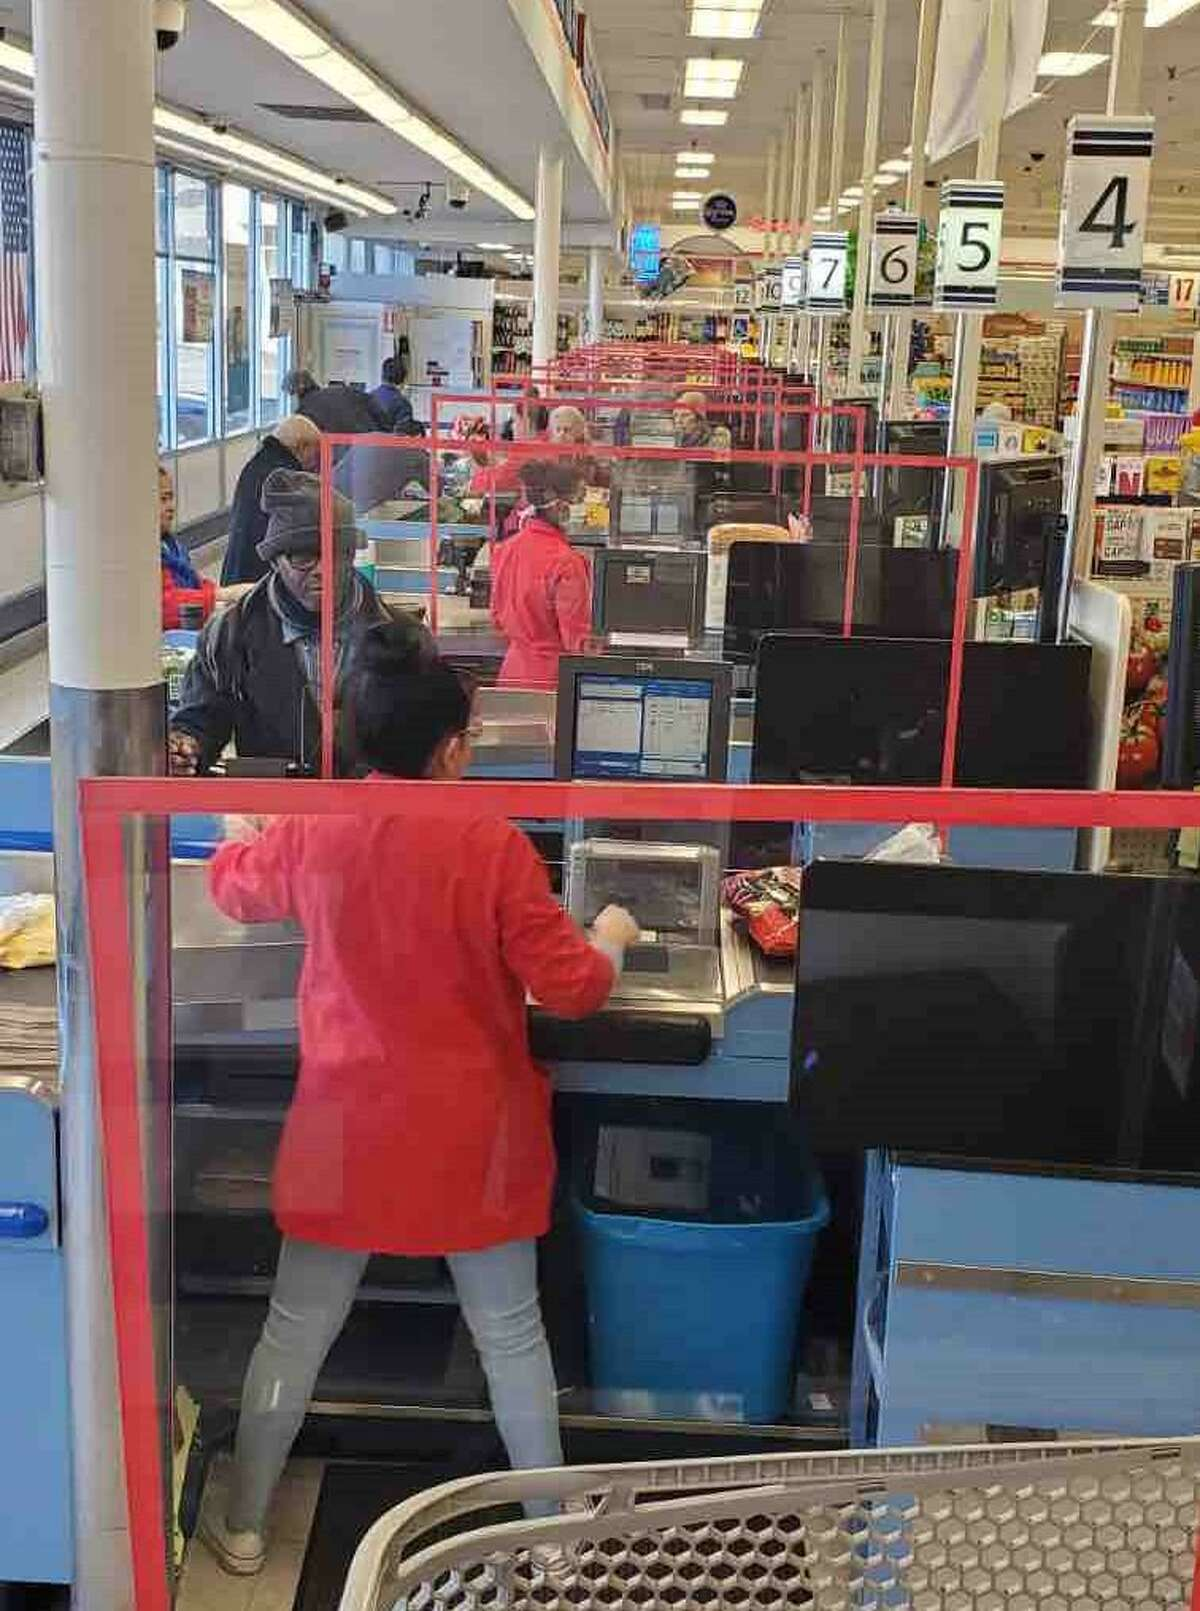 ShopRite of Shelton had installed plexiglass dividers at all cash registers and implement other social distancing guidelines. This photo was posted on its Facebook page on March 27, in which store management asked, for the safety of all shoppers and our associates, shoppers make their best effort to practice safe social distancing while shopping in the store.